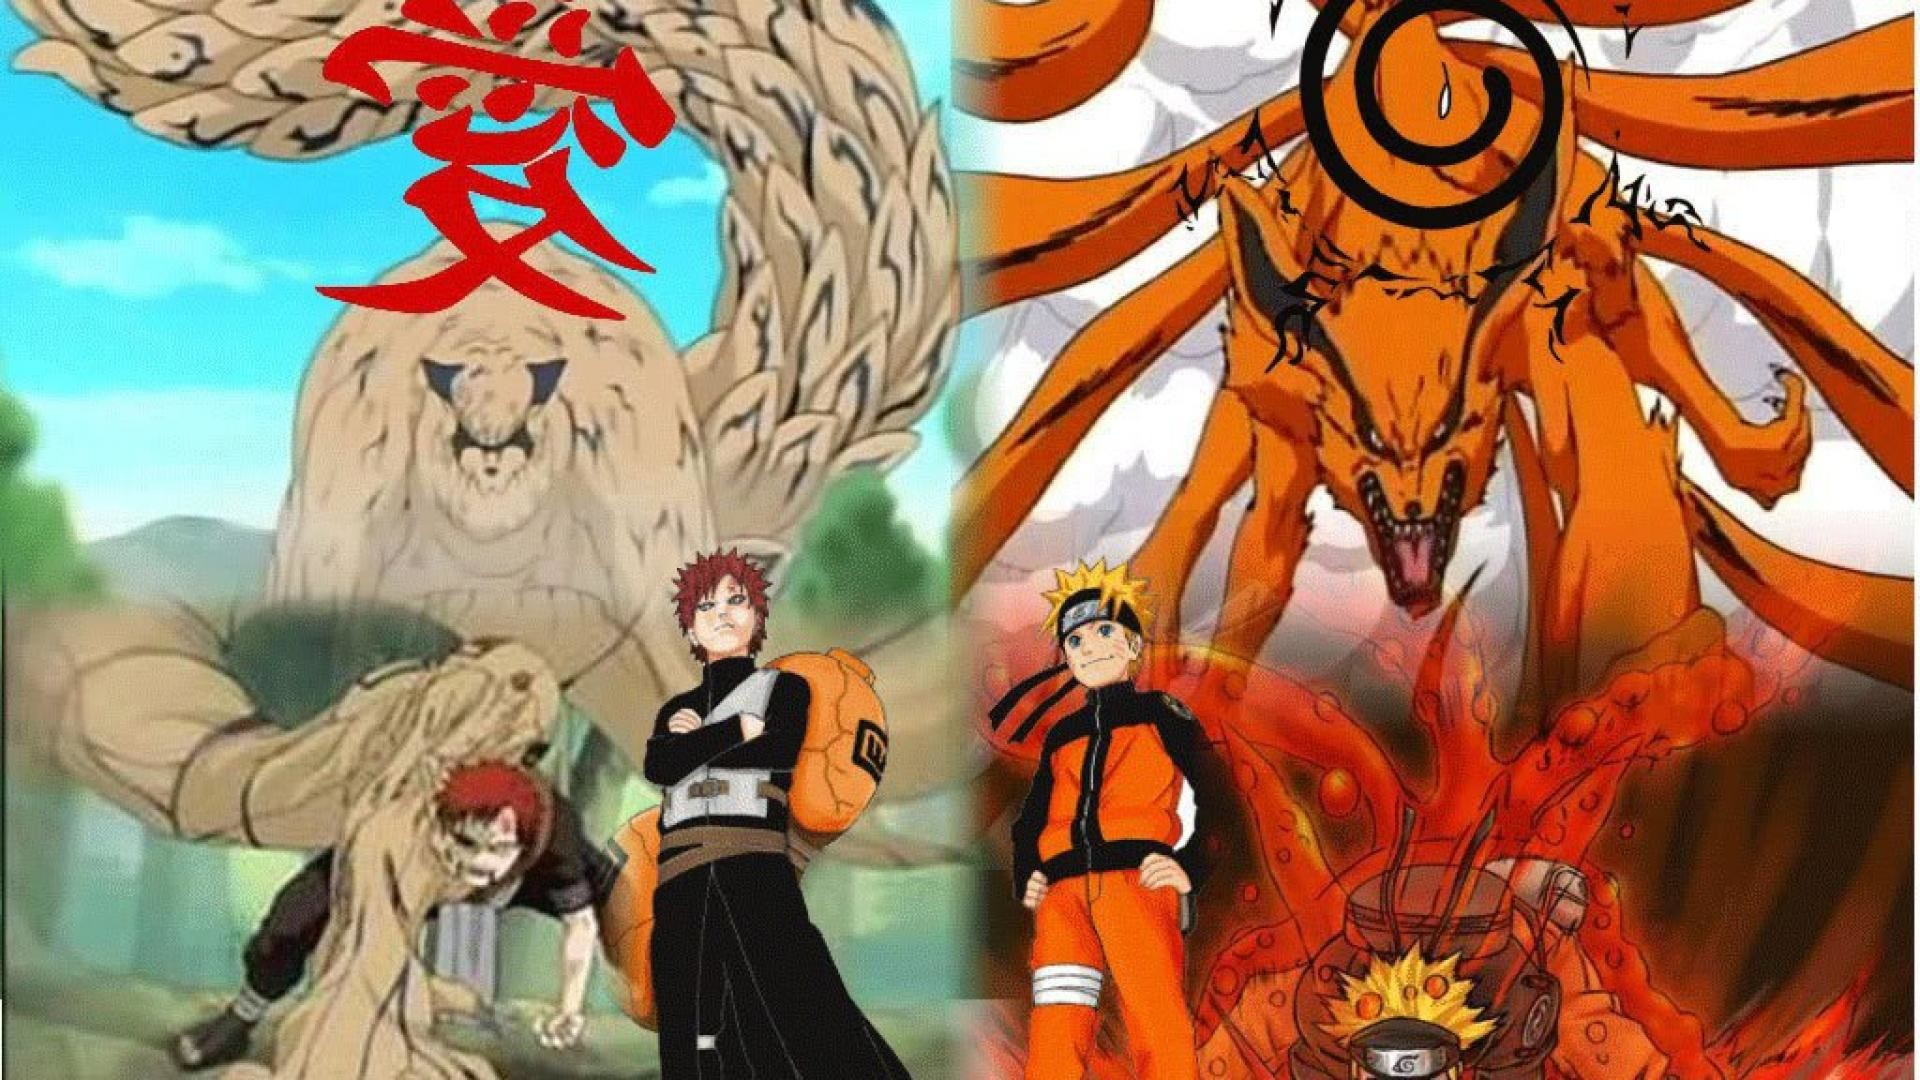 1920x1080 Naruto and gaara by cartoon hd wallpaper HQ WALLPAPER - (#38727)